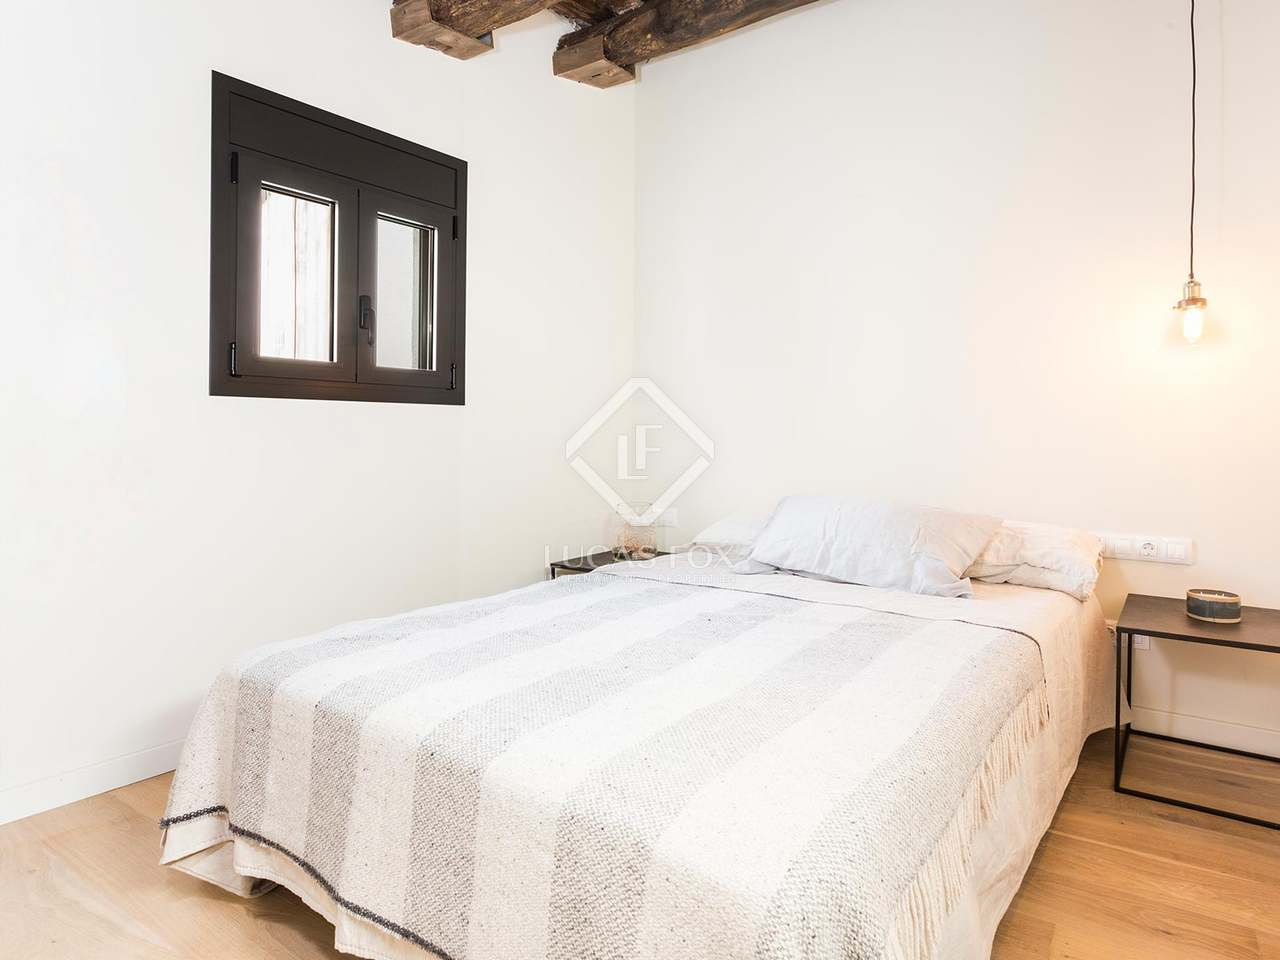 New build 1 bedroom apartment for sale in barcelona old town for 1 bedroom apartment barcelona